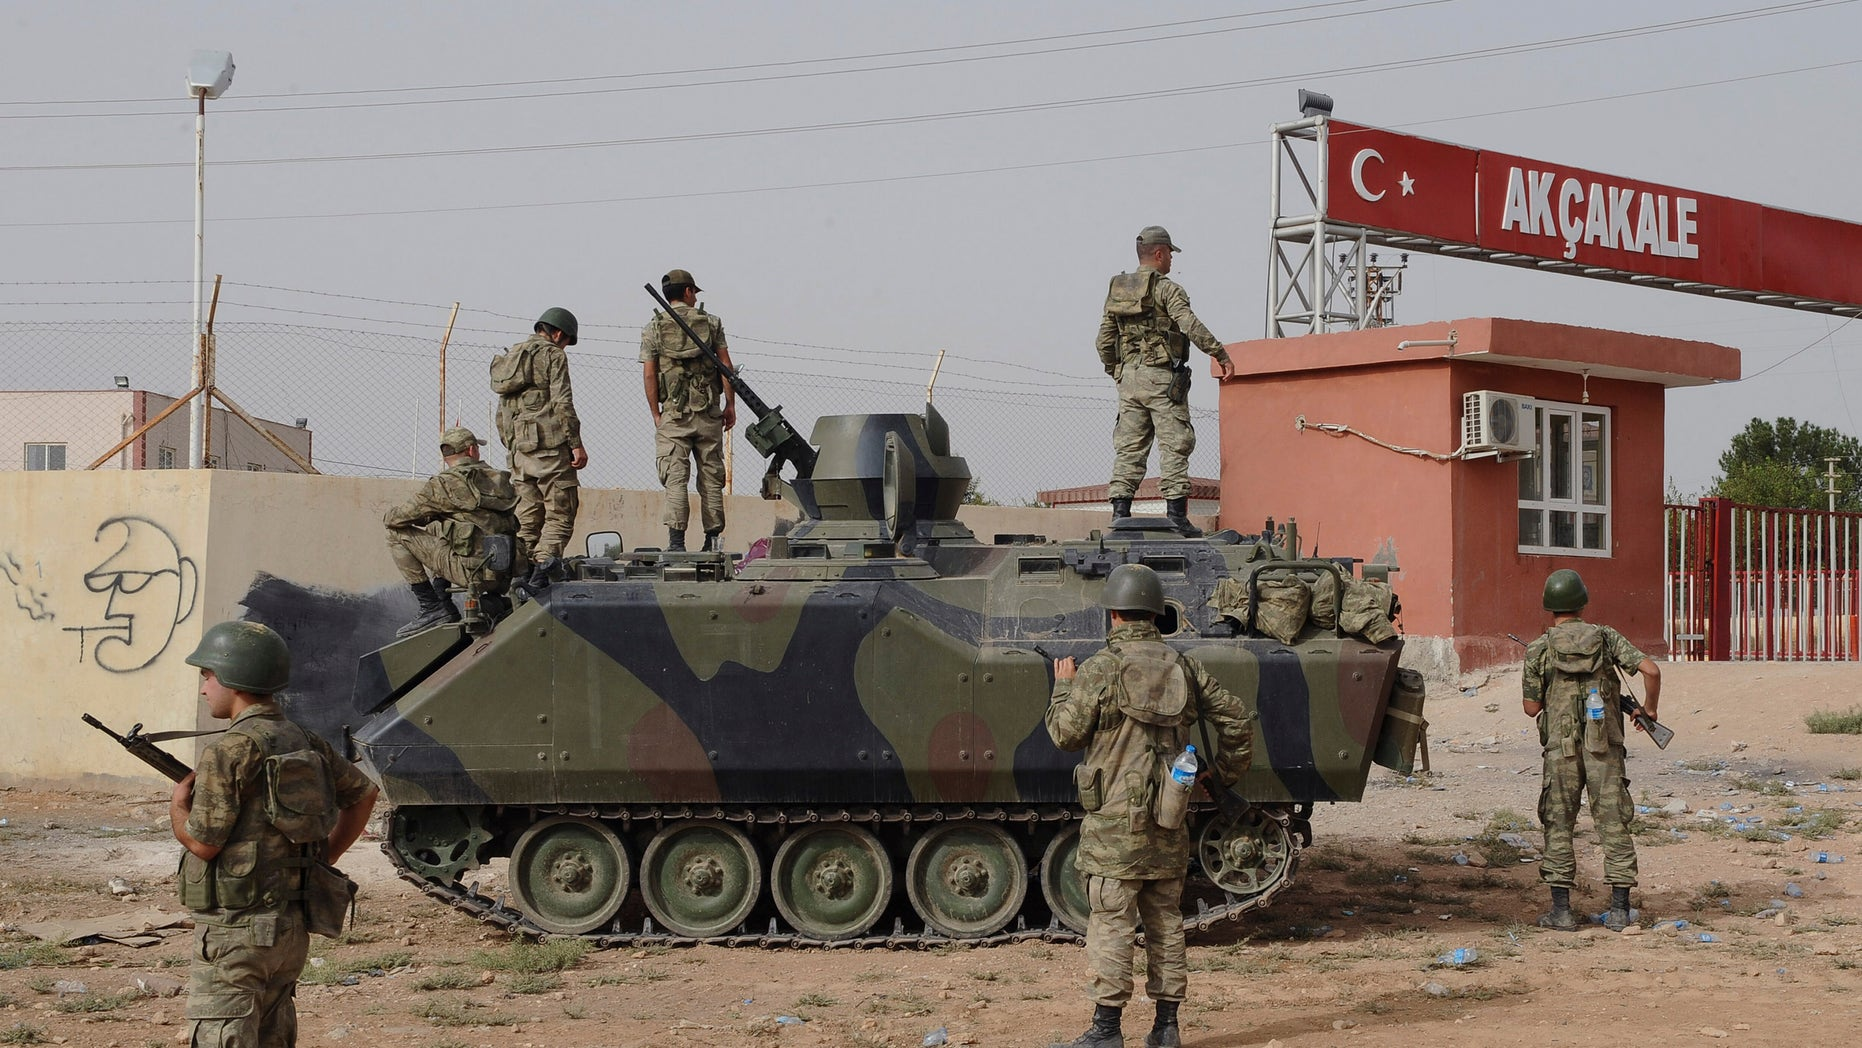 Oct. 7, 2012.: Turkish military station at the border gate with Syria, across from Syrian rebel-controlled Tel Abyad town, in Akcakale, Turkey.